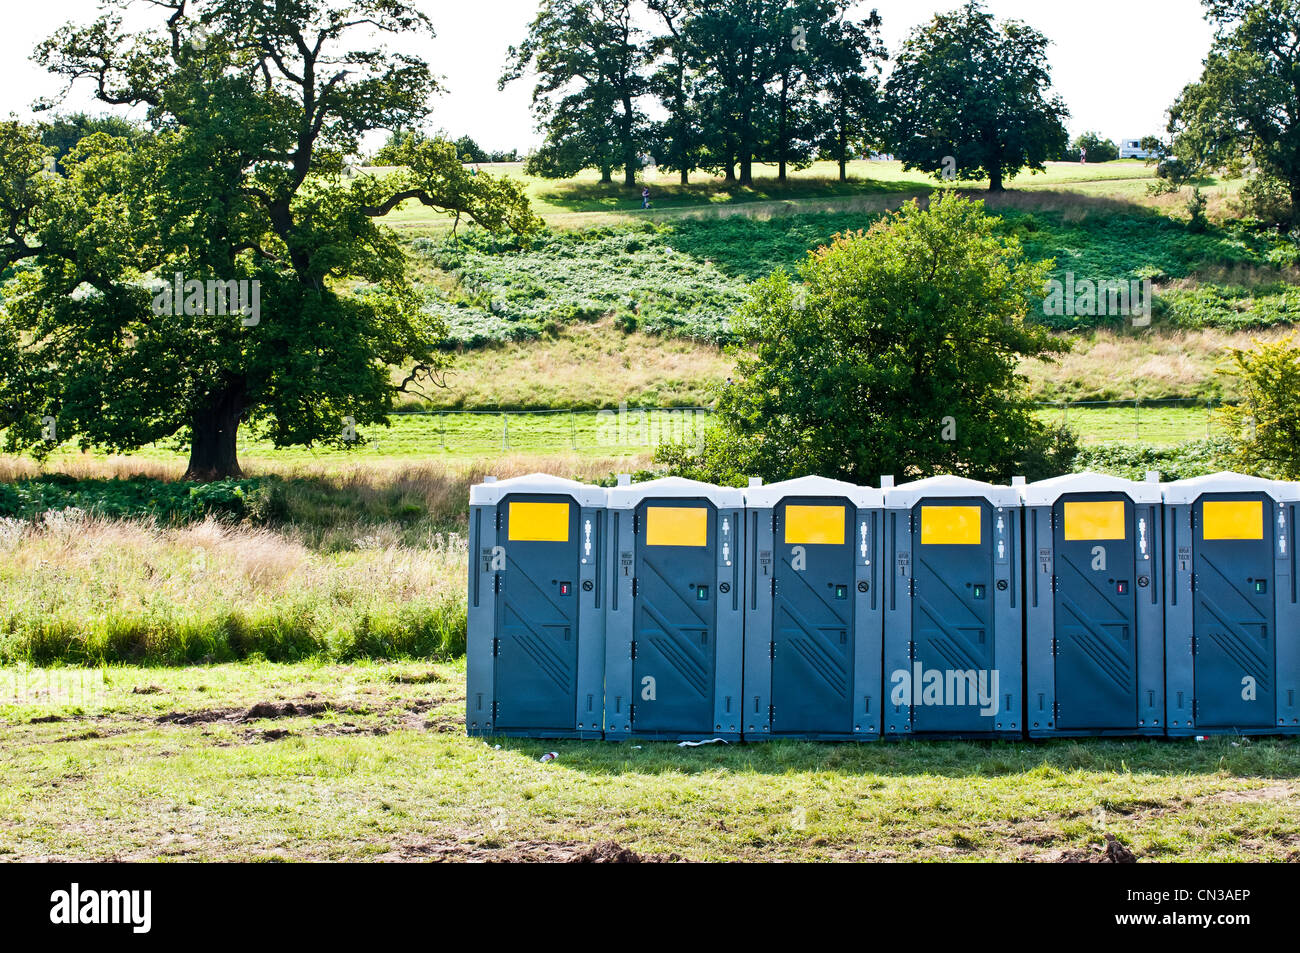 Row of portable toilets in field - Stock Image